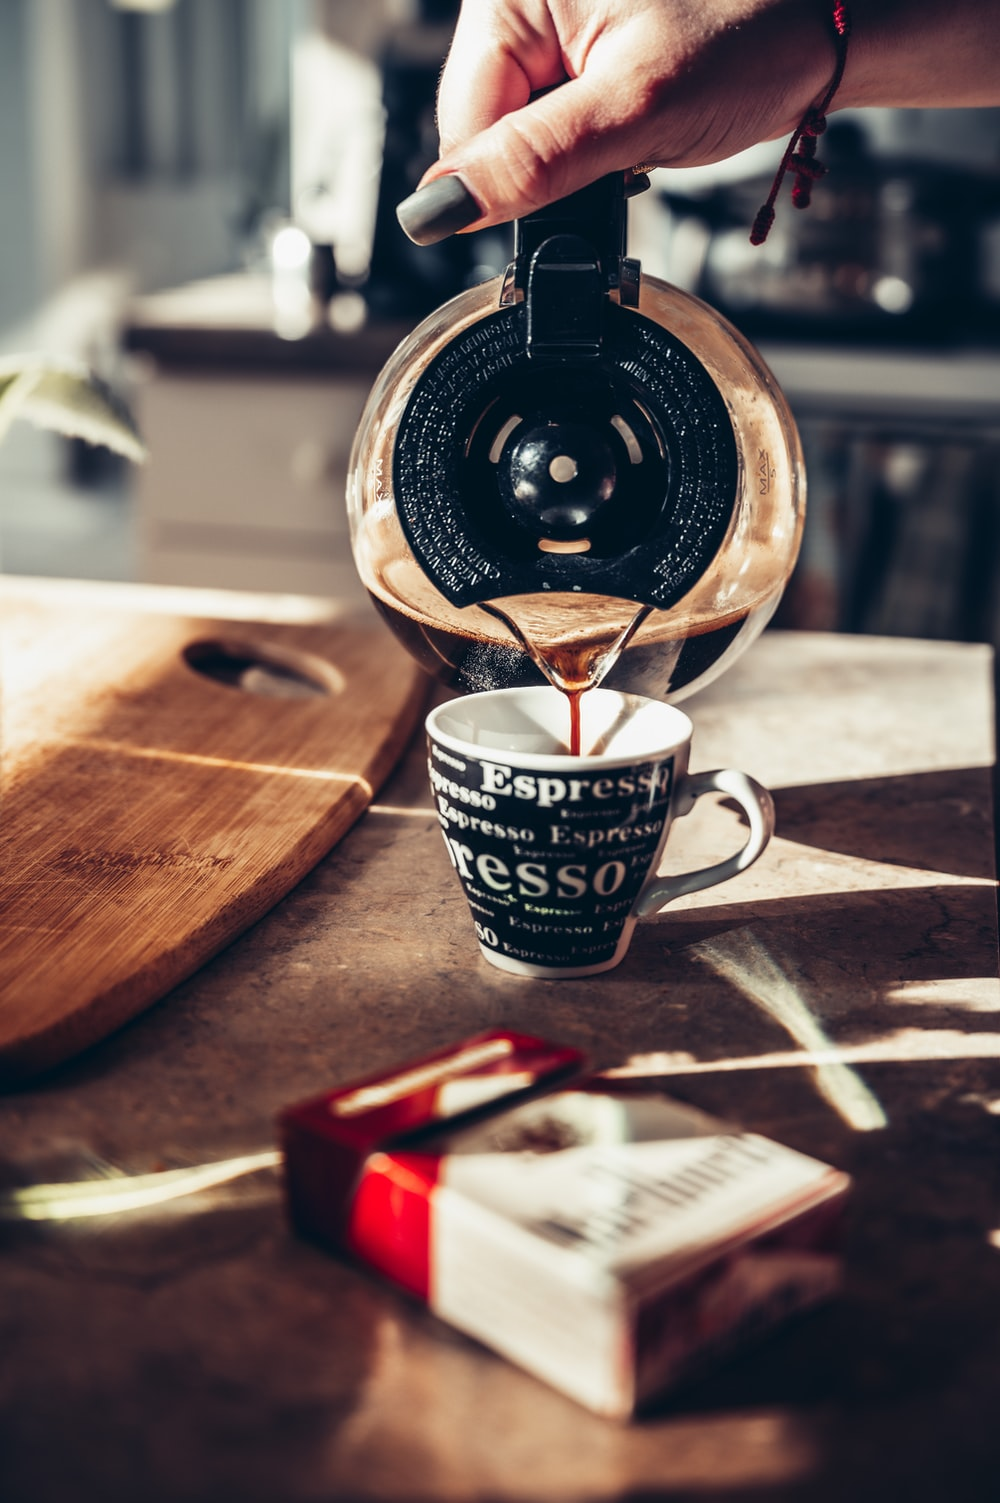 white and black ceramic mug on brown wooden table